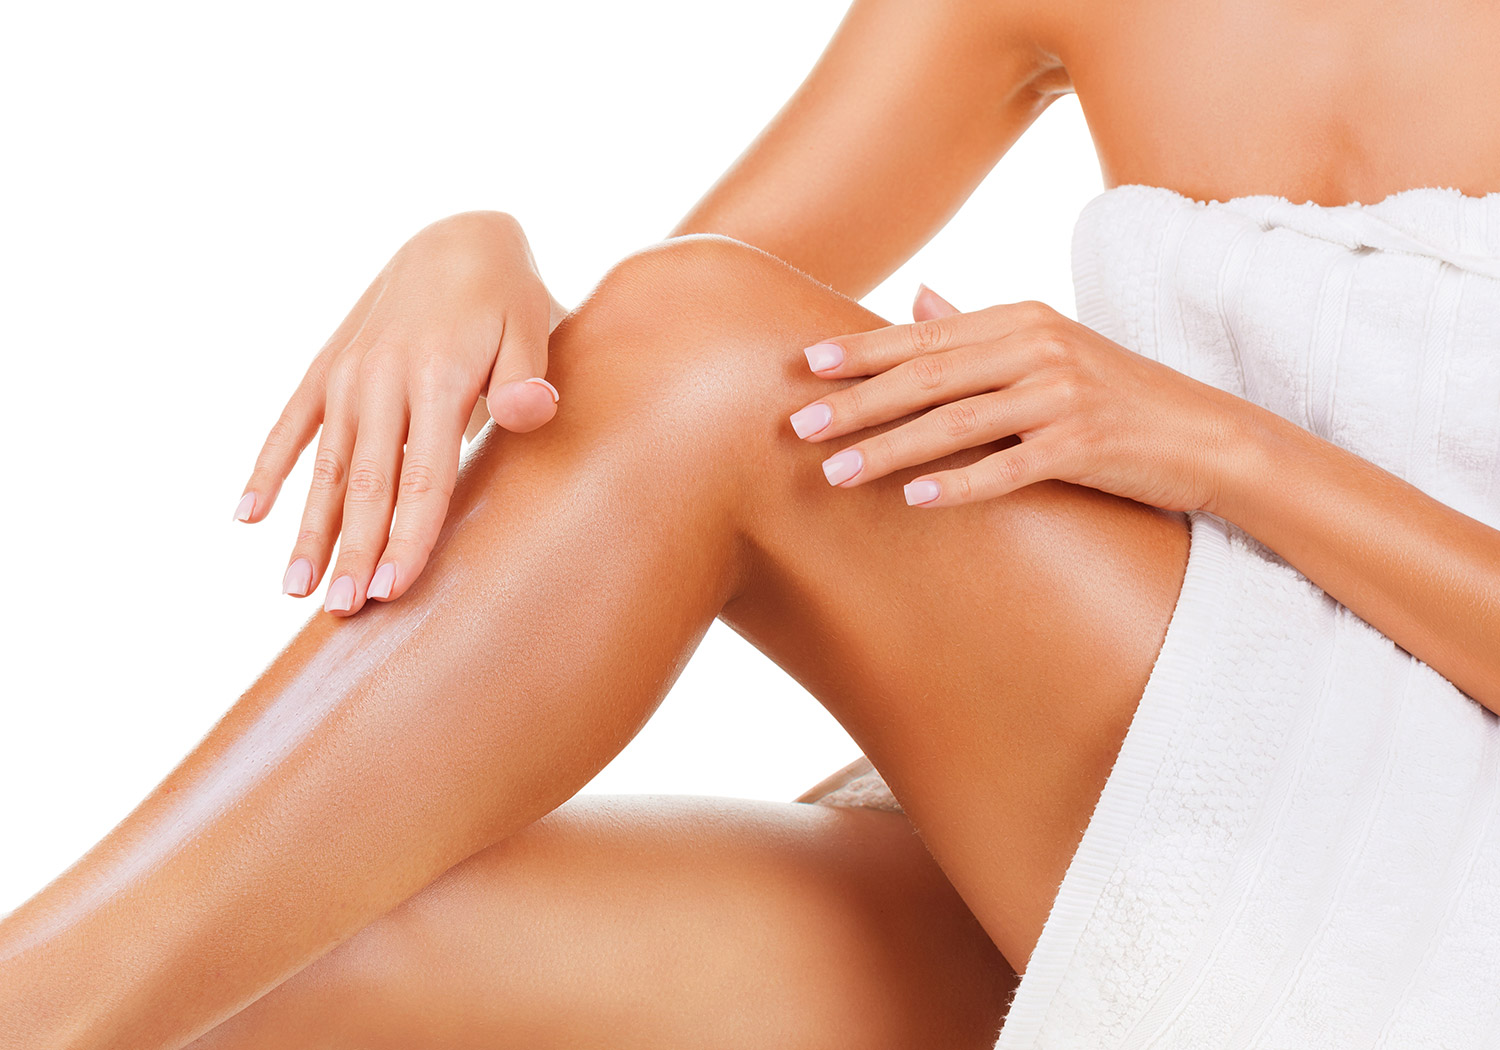 Sugar or Waxing Service - Smooth Skin Forever